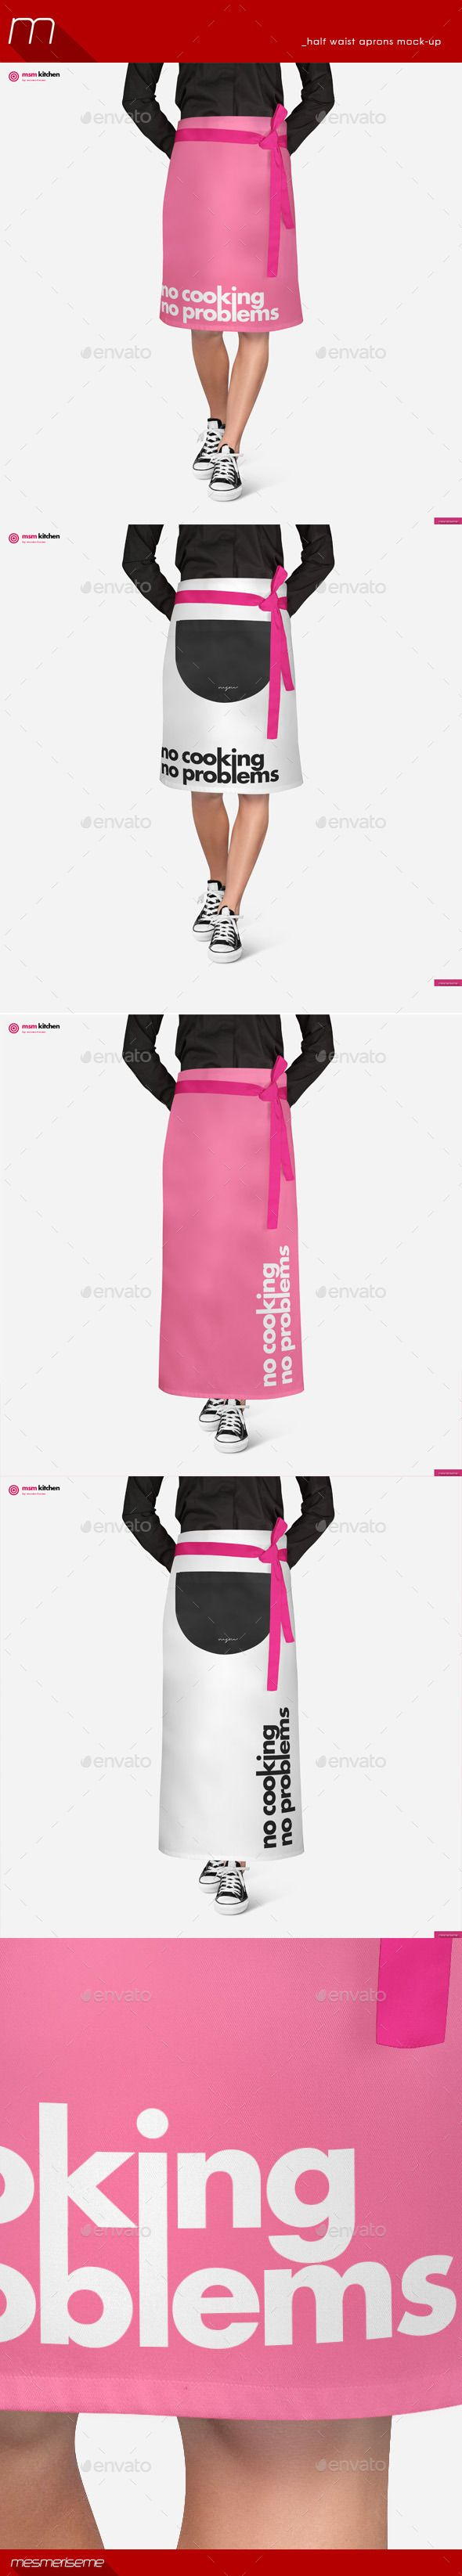 White apron mockup - Buy Half Waist Apron 2 Types Mock Up By Mesmeriseme On Graphicriver Half Waist Aprons Mock Up 2 Psd Files Px 72 Dpi You Can Pick Your Own Color Gradient